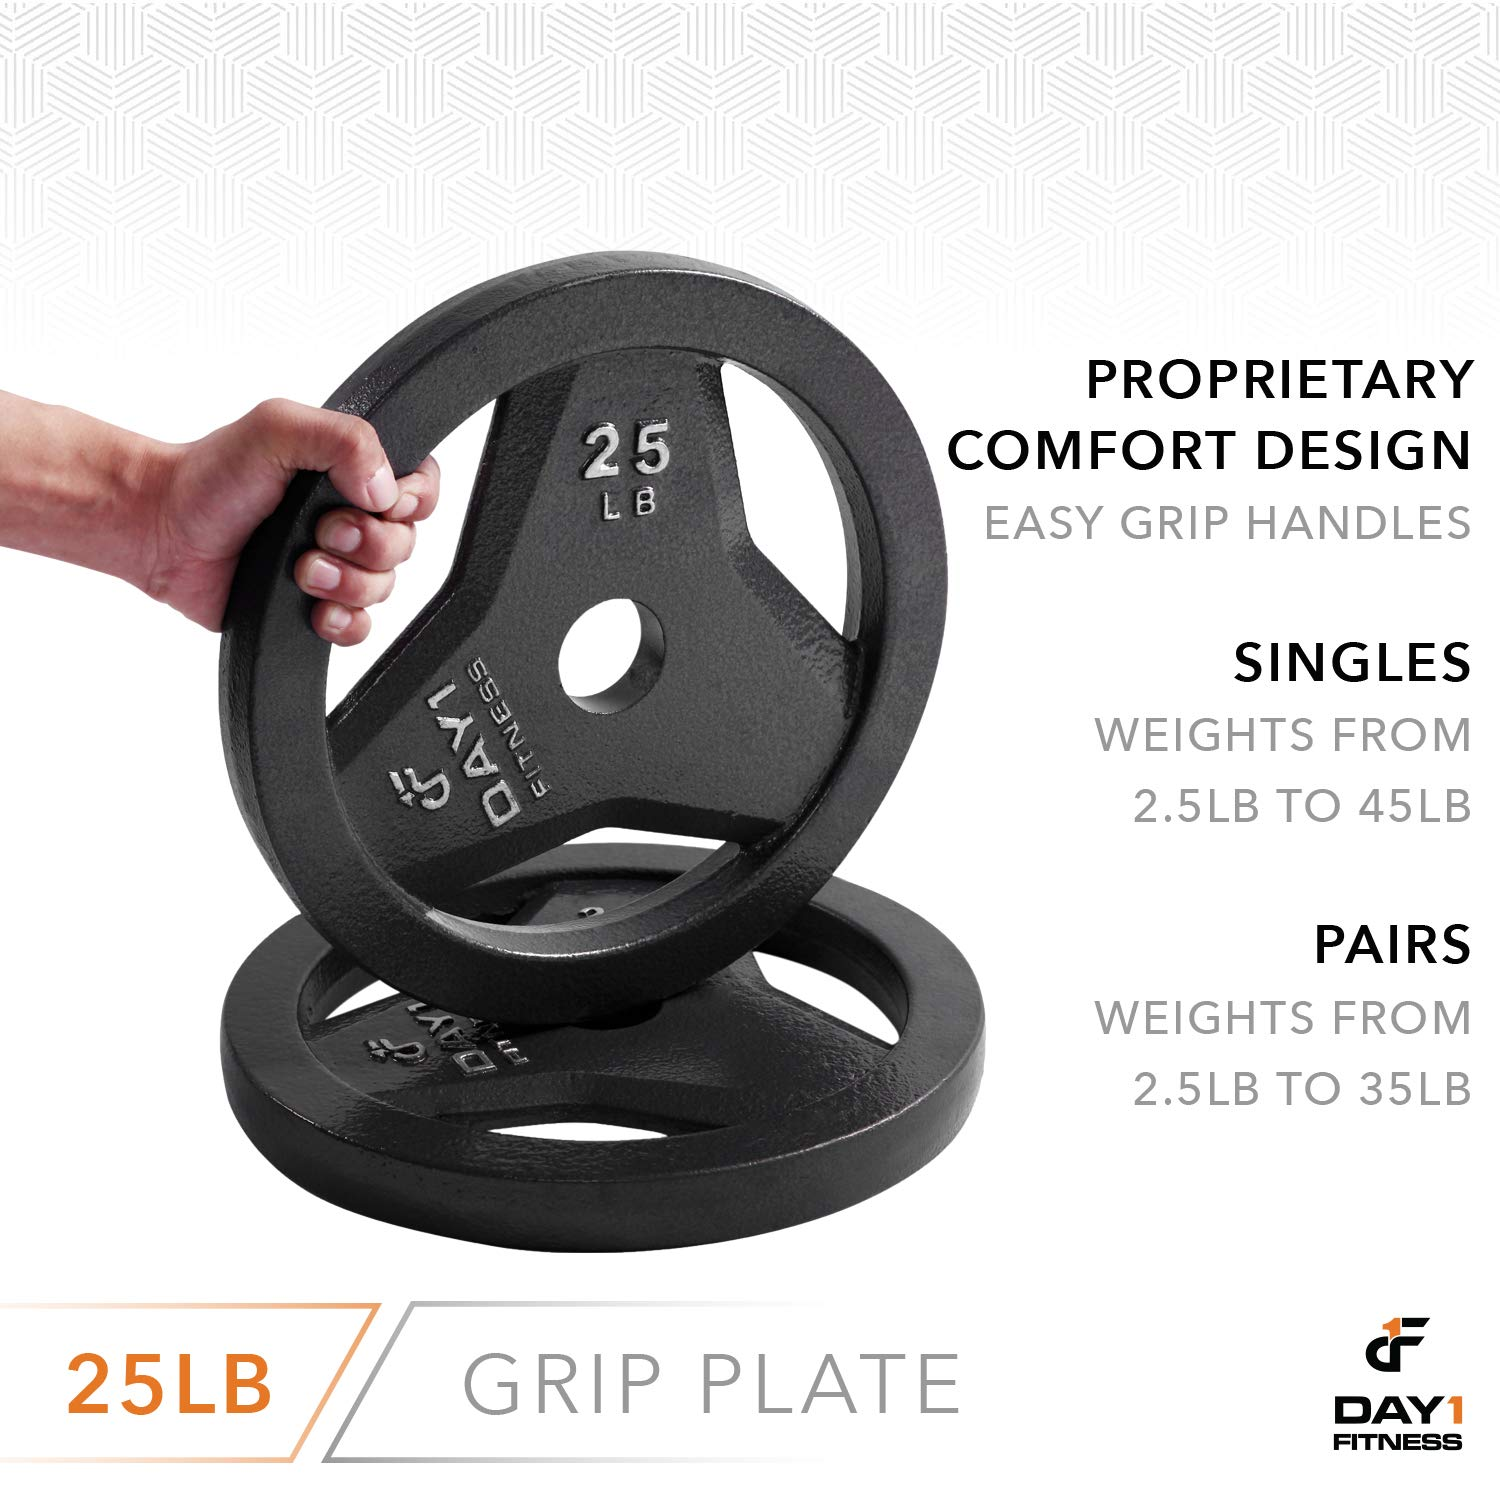 "Day 1 Fitness Cast Iron Olympic 2-Inch Grip Plate for Barbell, 25 Pound Single Plate Iron Grip Plates for Weightlifting, Crossfit - 2"" Weight Plate for Bodybuilding by Day 1 Fitness (Image #5)"